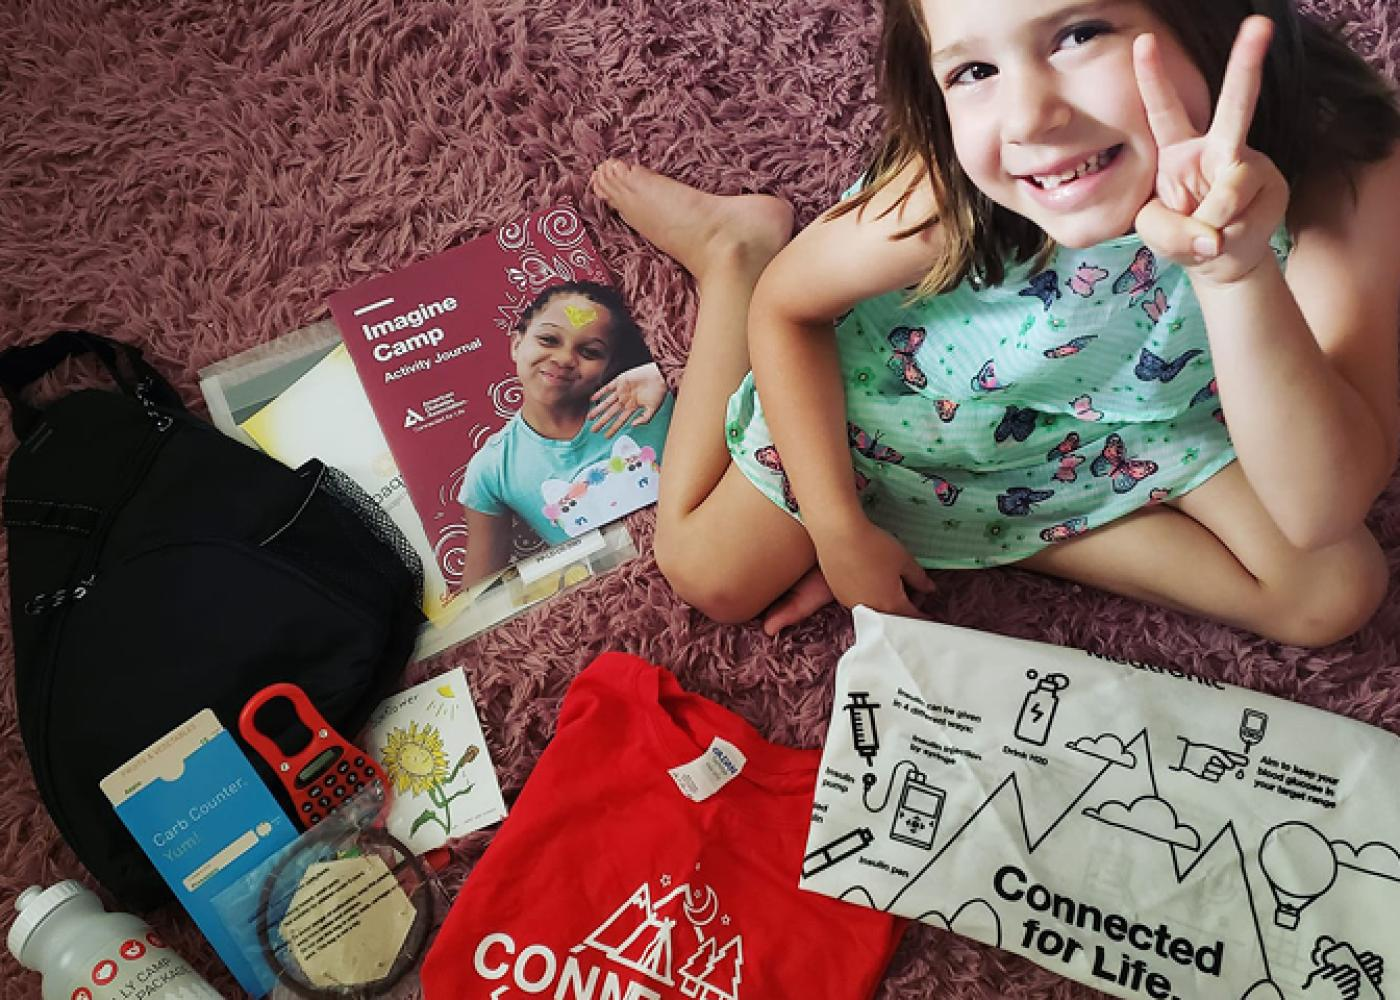 Girl in green dress on pink shag carpet with camp materials giving peace sign surrounded by camp swag